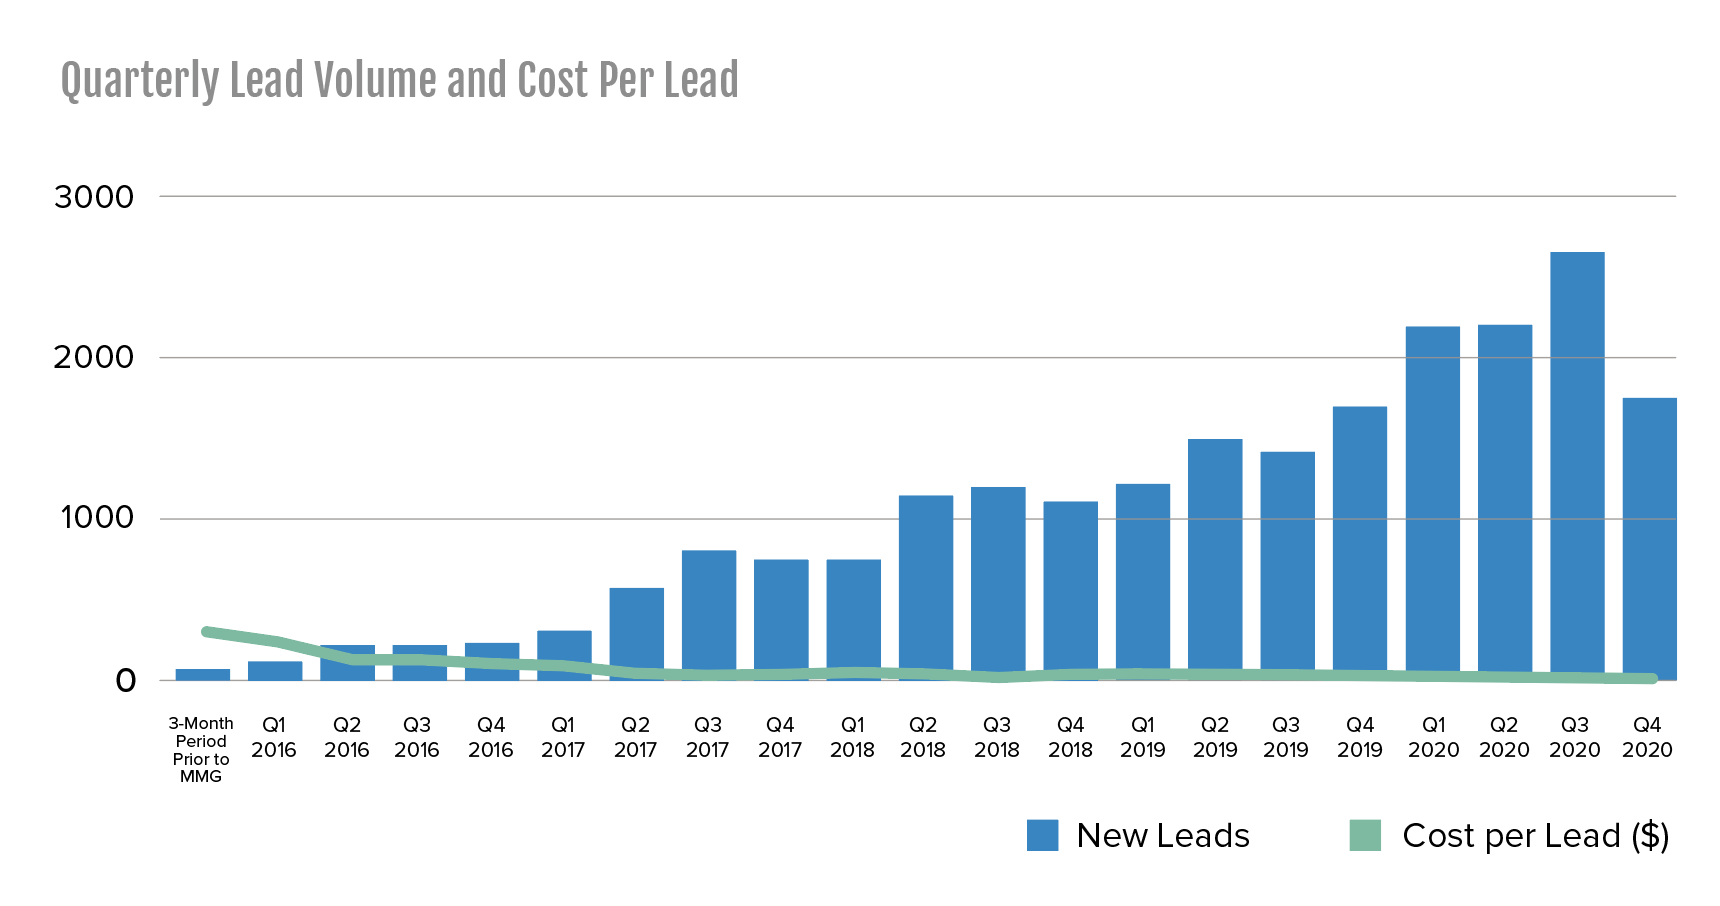 quarterly lead volume and cost per lead from 2016 through 2020